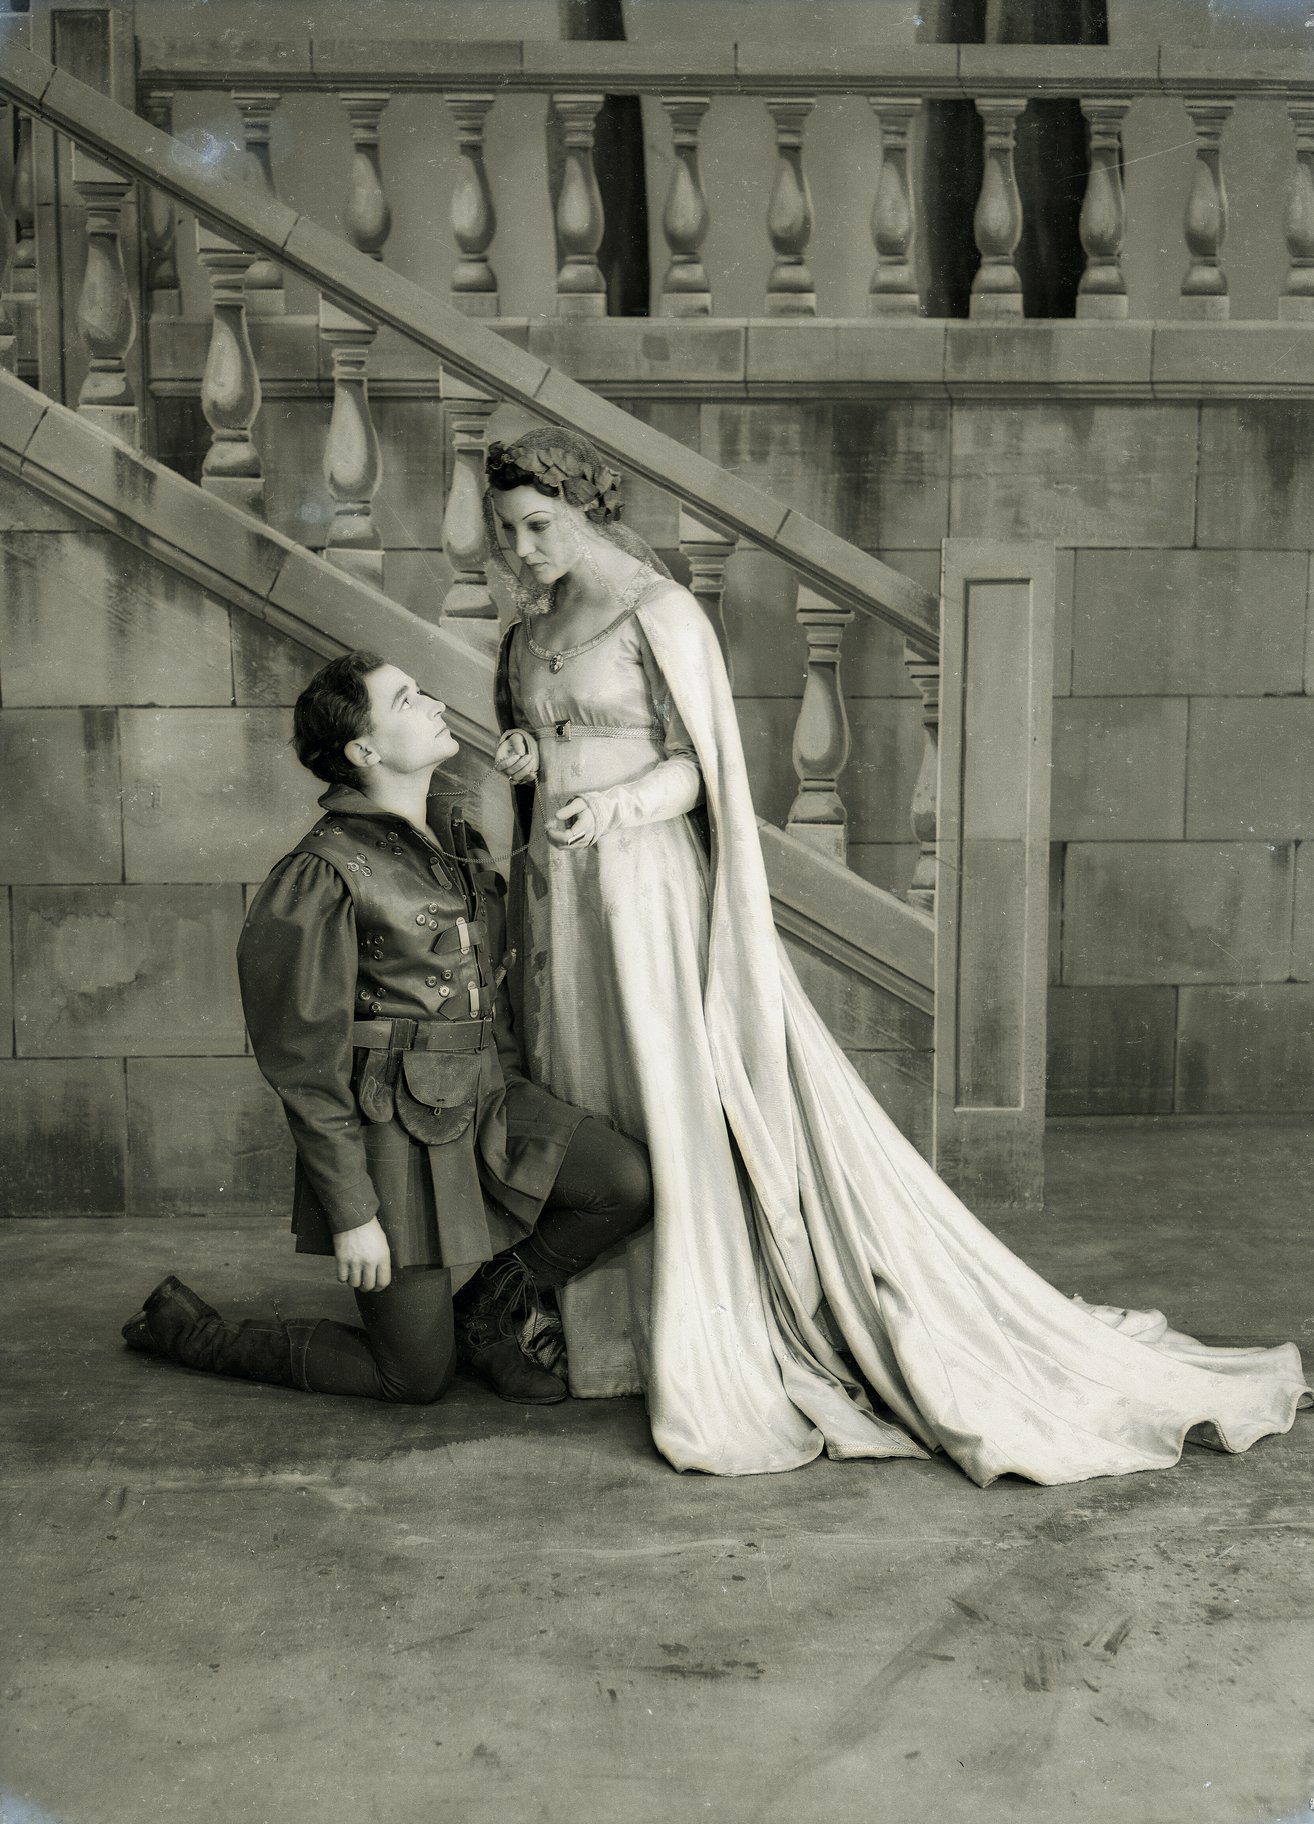 A man kneels at the feet of a woman in a long white dress.